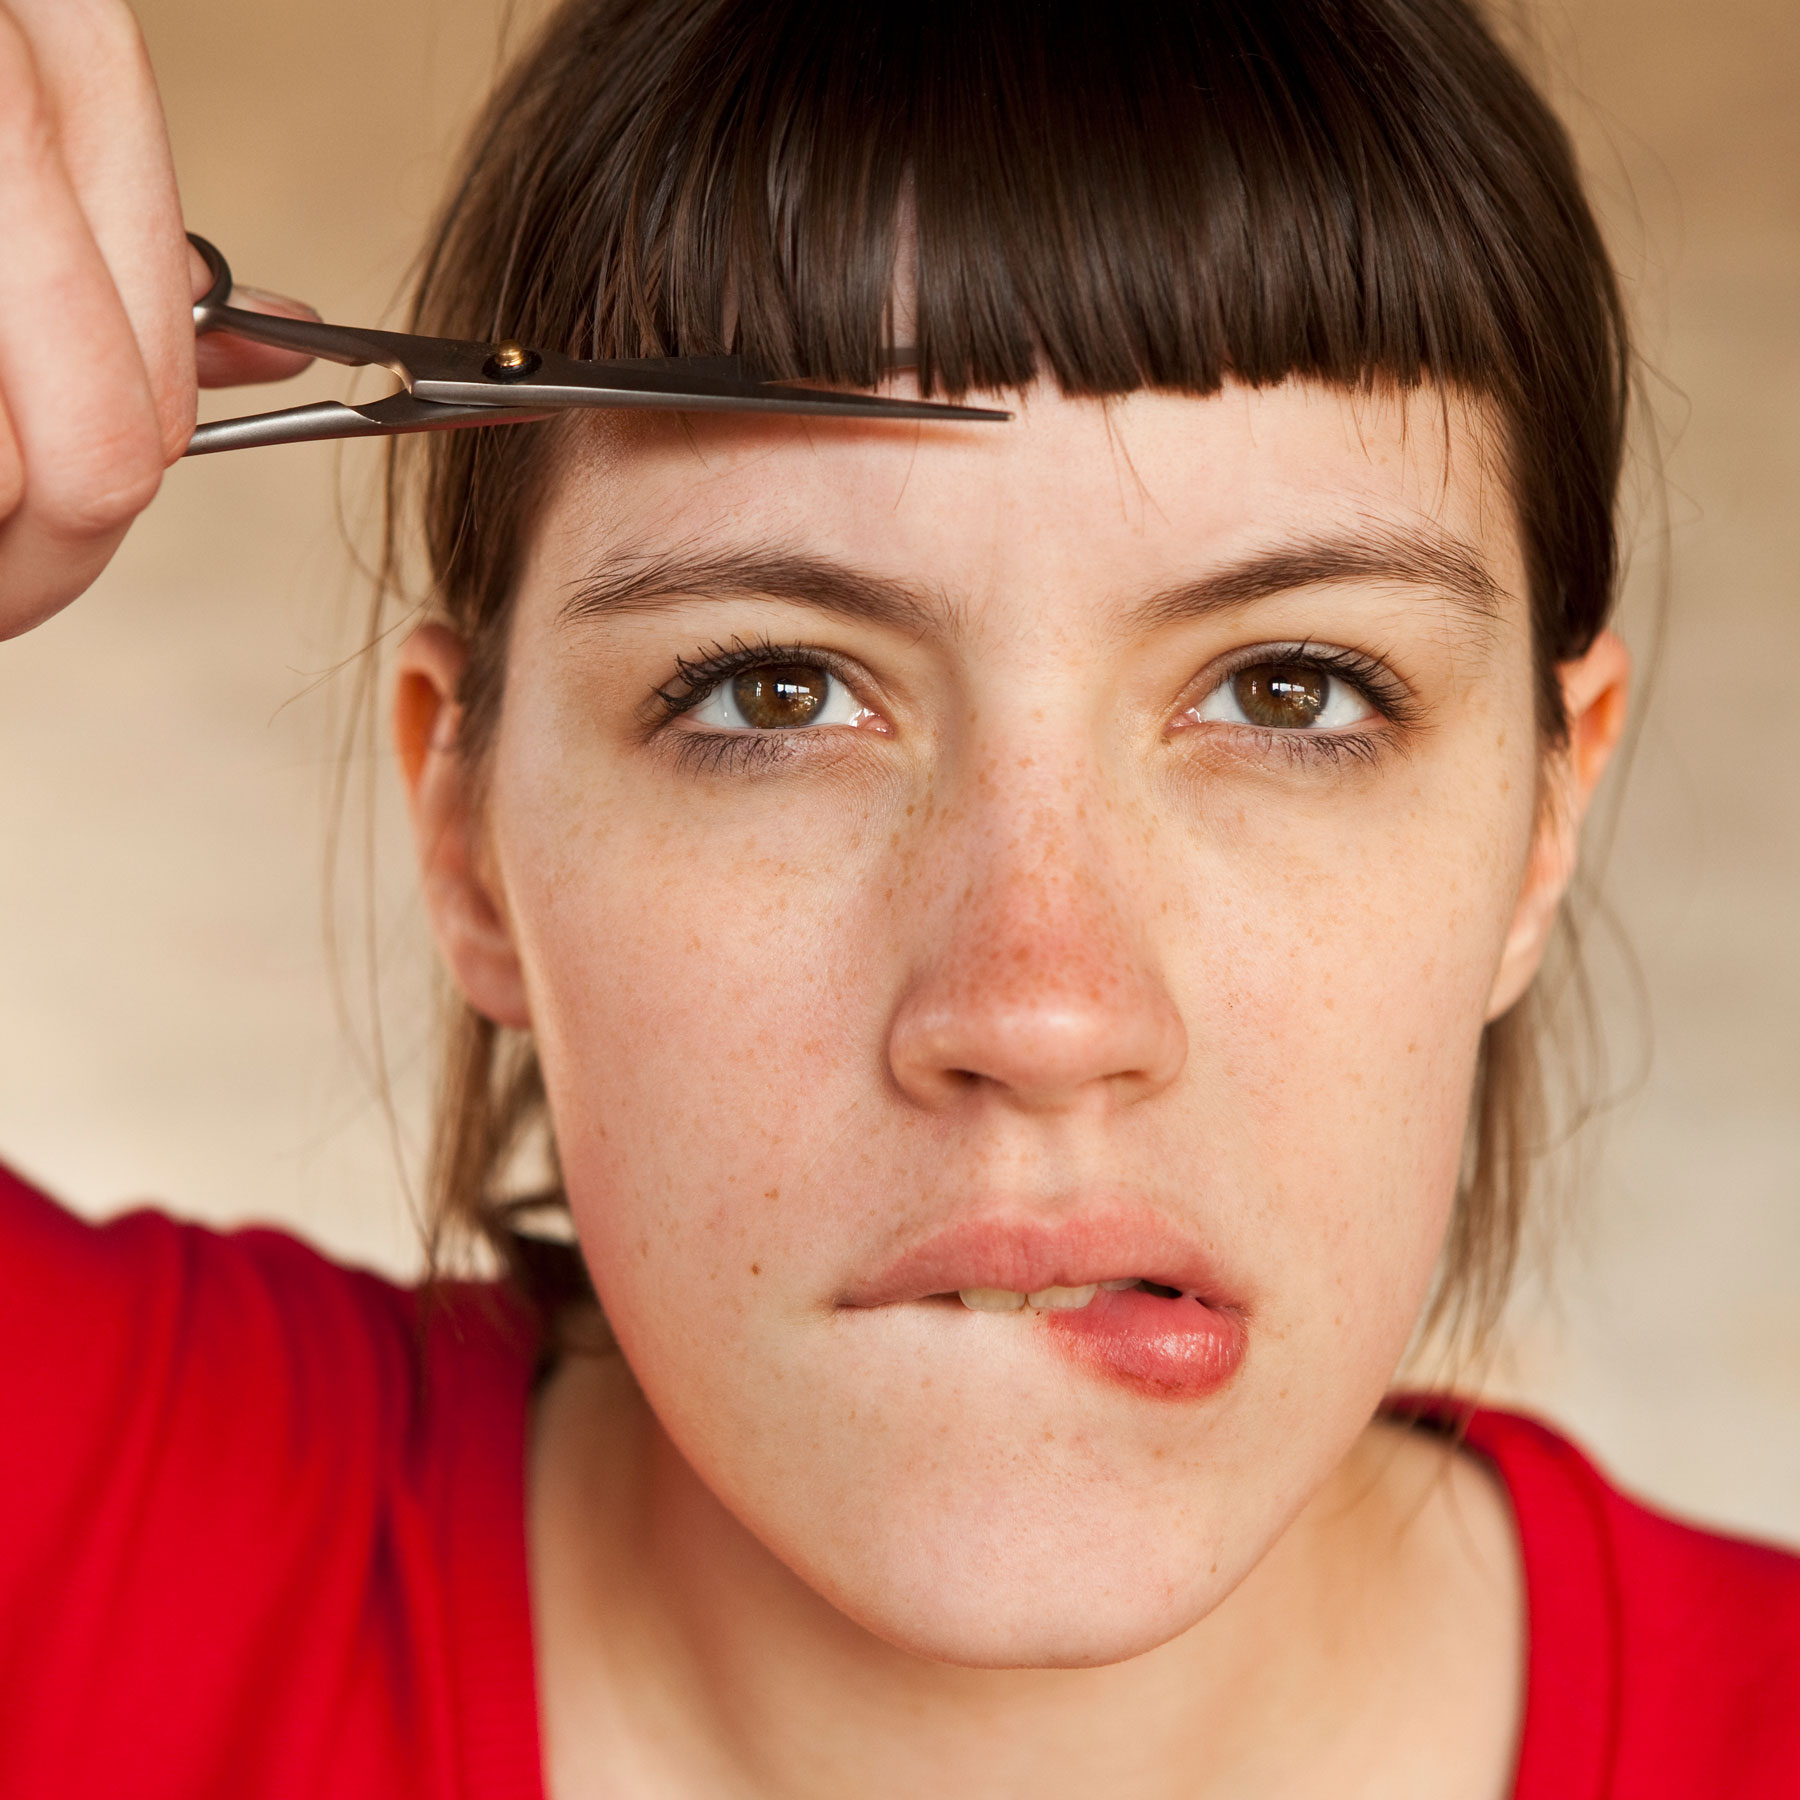 Quarantine haircut: Should you cut your own hair during quarantine (woman with bad bangs)